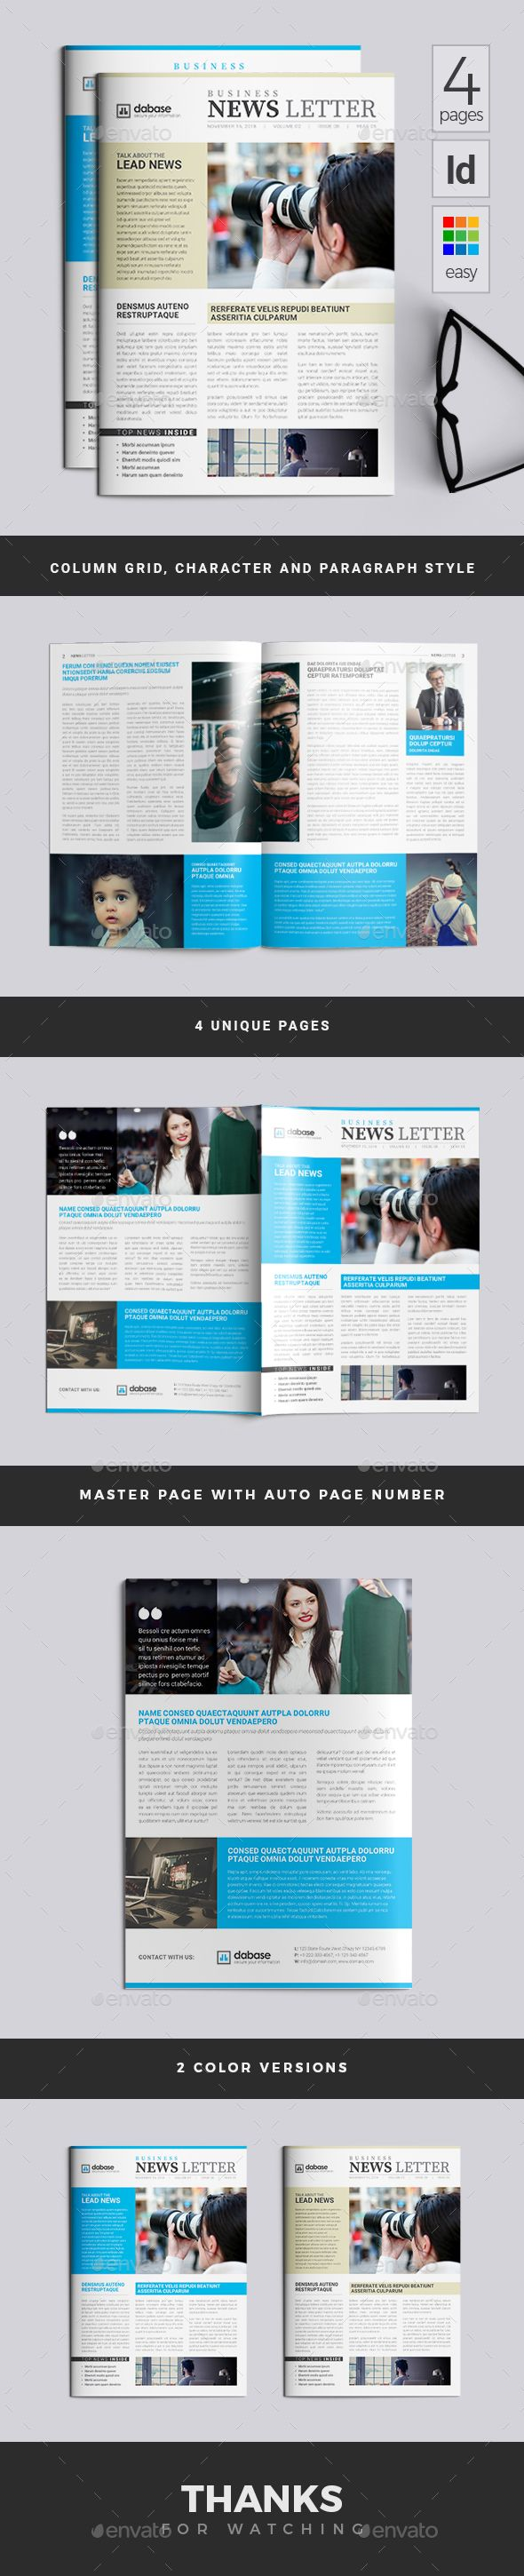 This newsletter contains 4 Custom Pages; A4 Size with (3mm) Bleed; 300DPI, CMYK and Print Ready; Fully Customizable: Editable Text, Color and Objects; Free Fonts and Column Grid Used; Master Page and Auto Page Numbers; Paragraph and Character Styles Source File Format: Indesign (Indd), (Idml) and PDF.